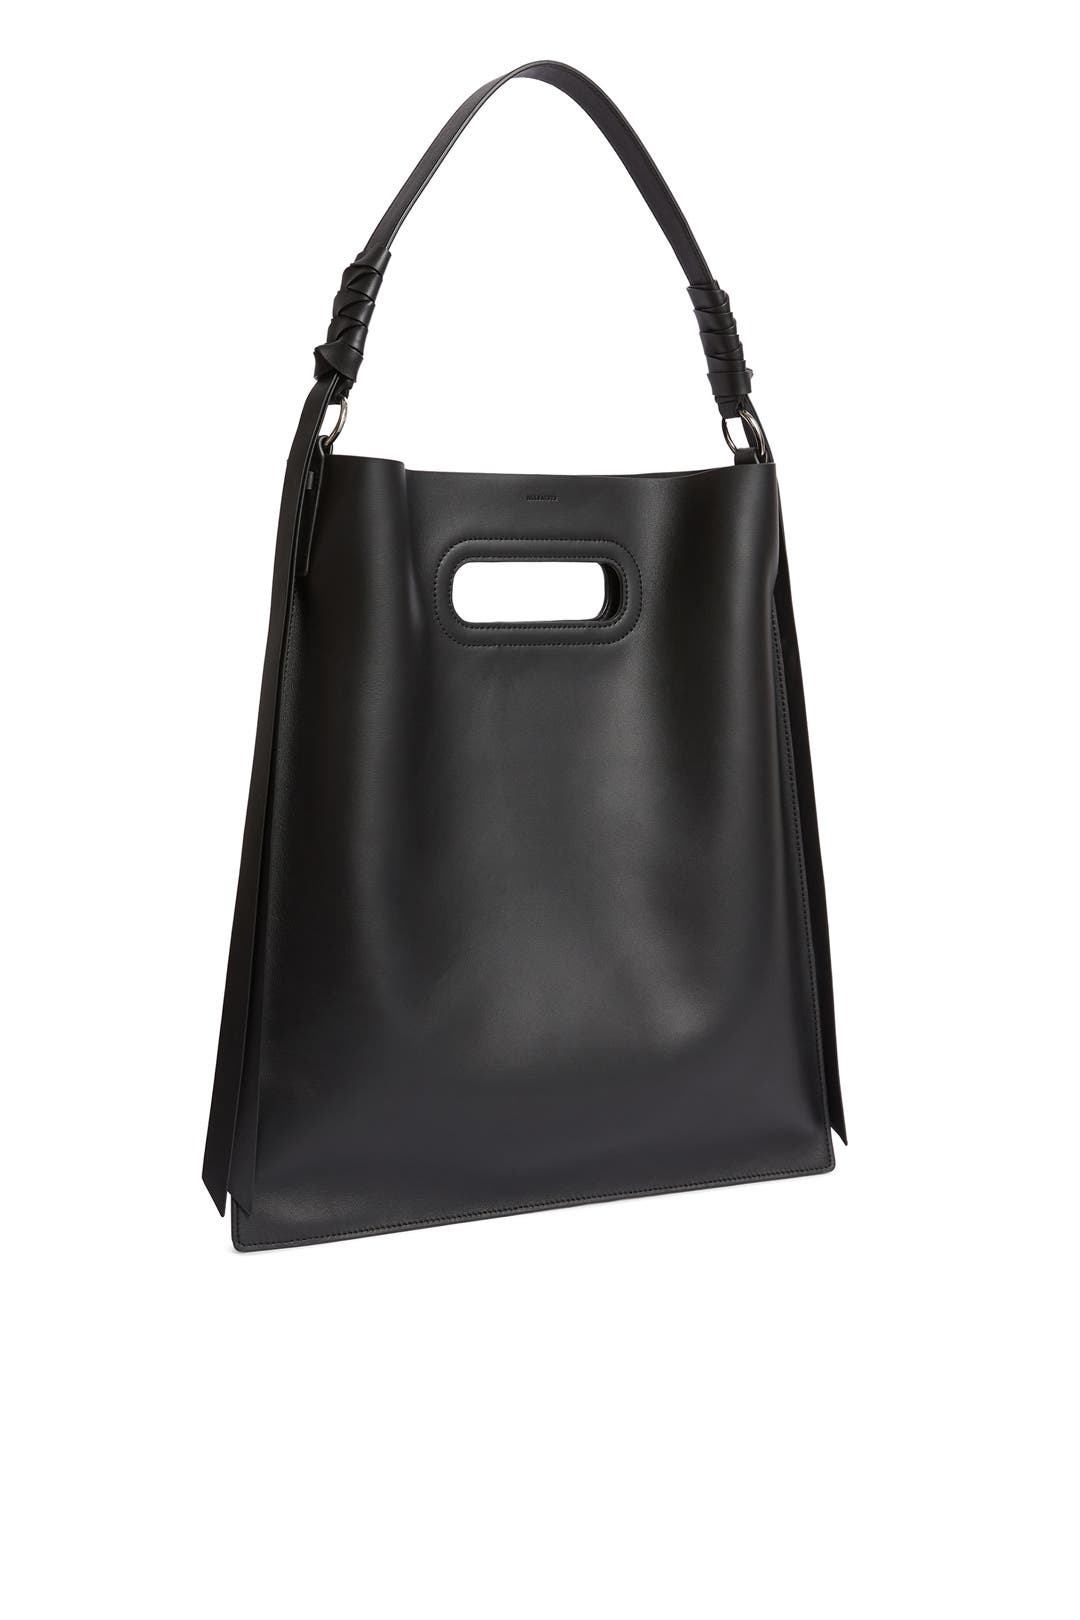 Black Voltaire Hobo Bag by AllSaints for  60   Rent the Runway 99ee88f1f9